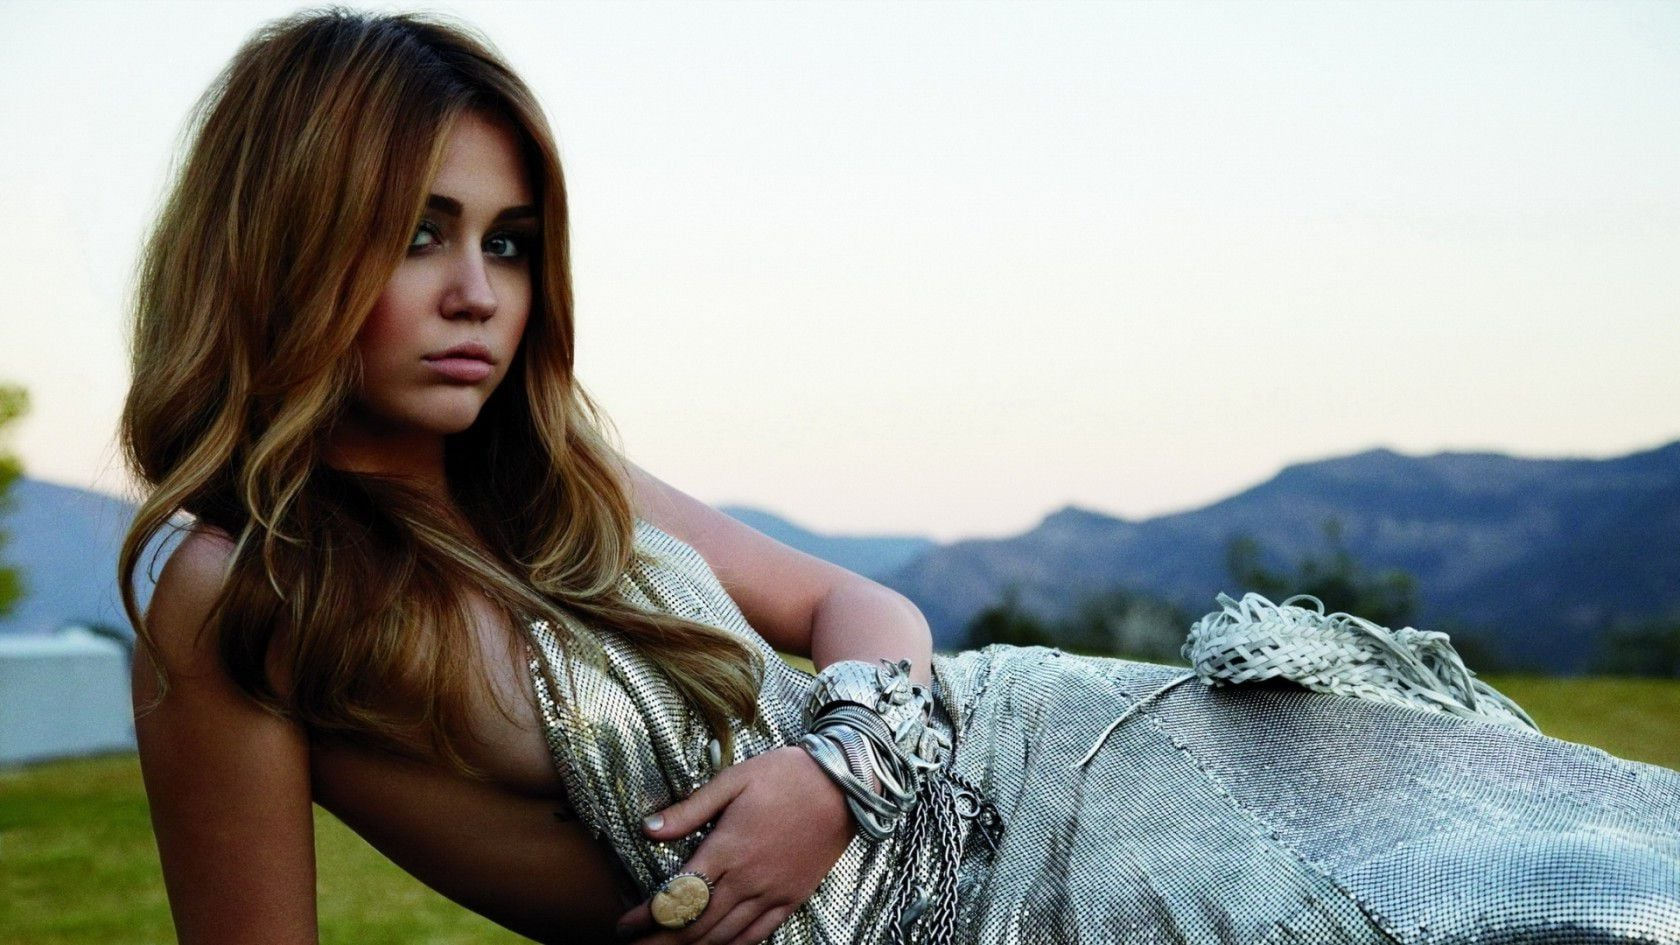 Miley Ray Cyrus in silver dress